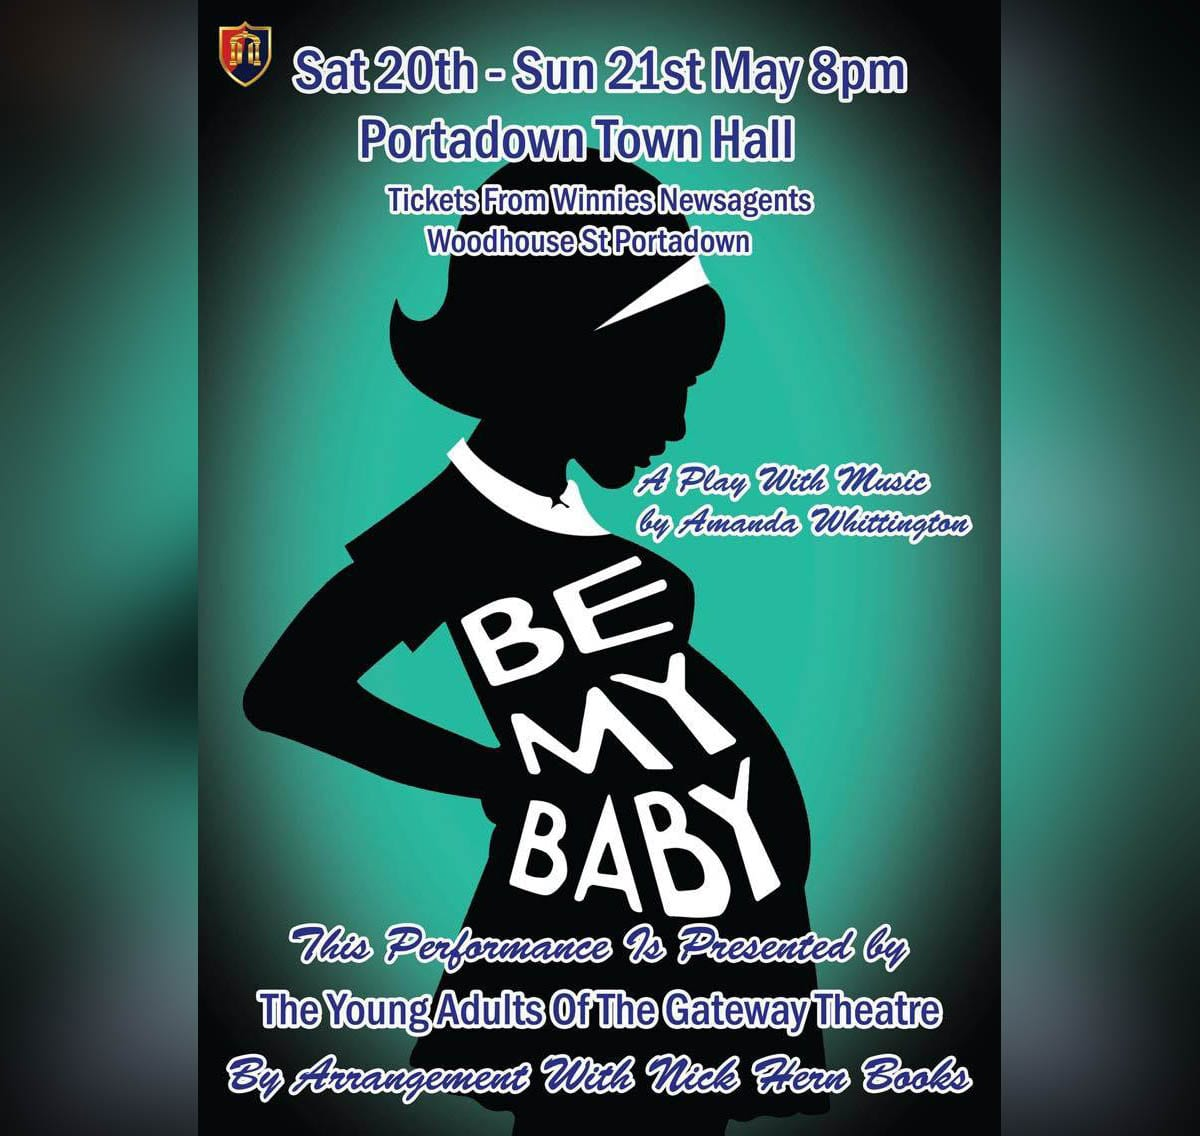 Be My Baby play in Portadown